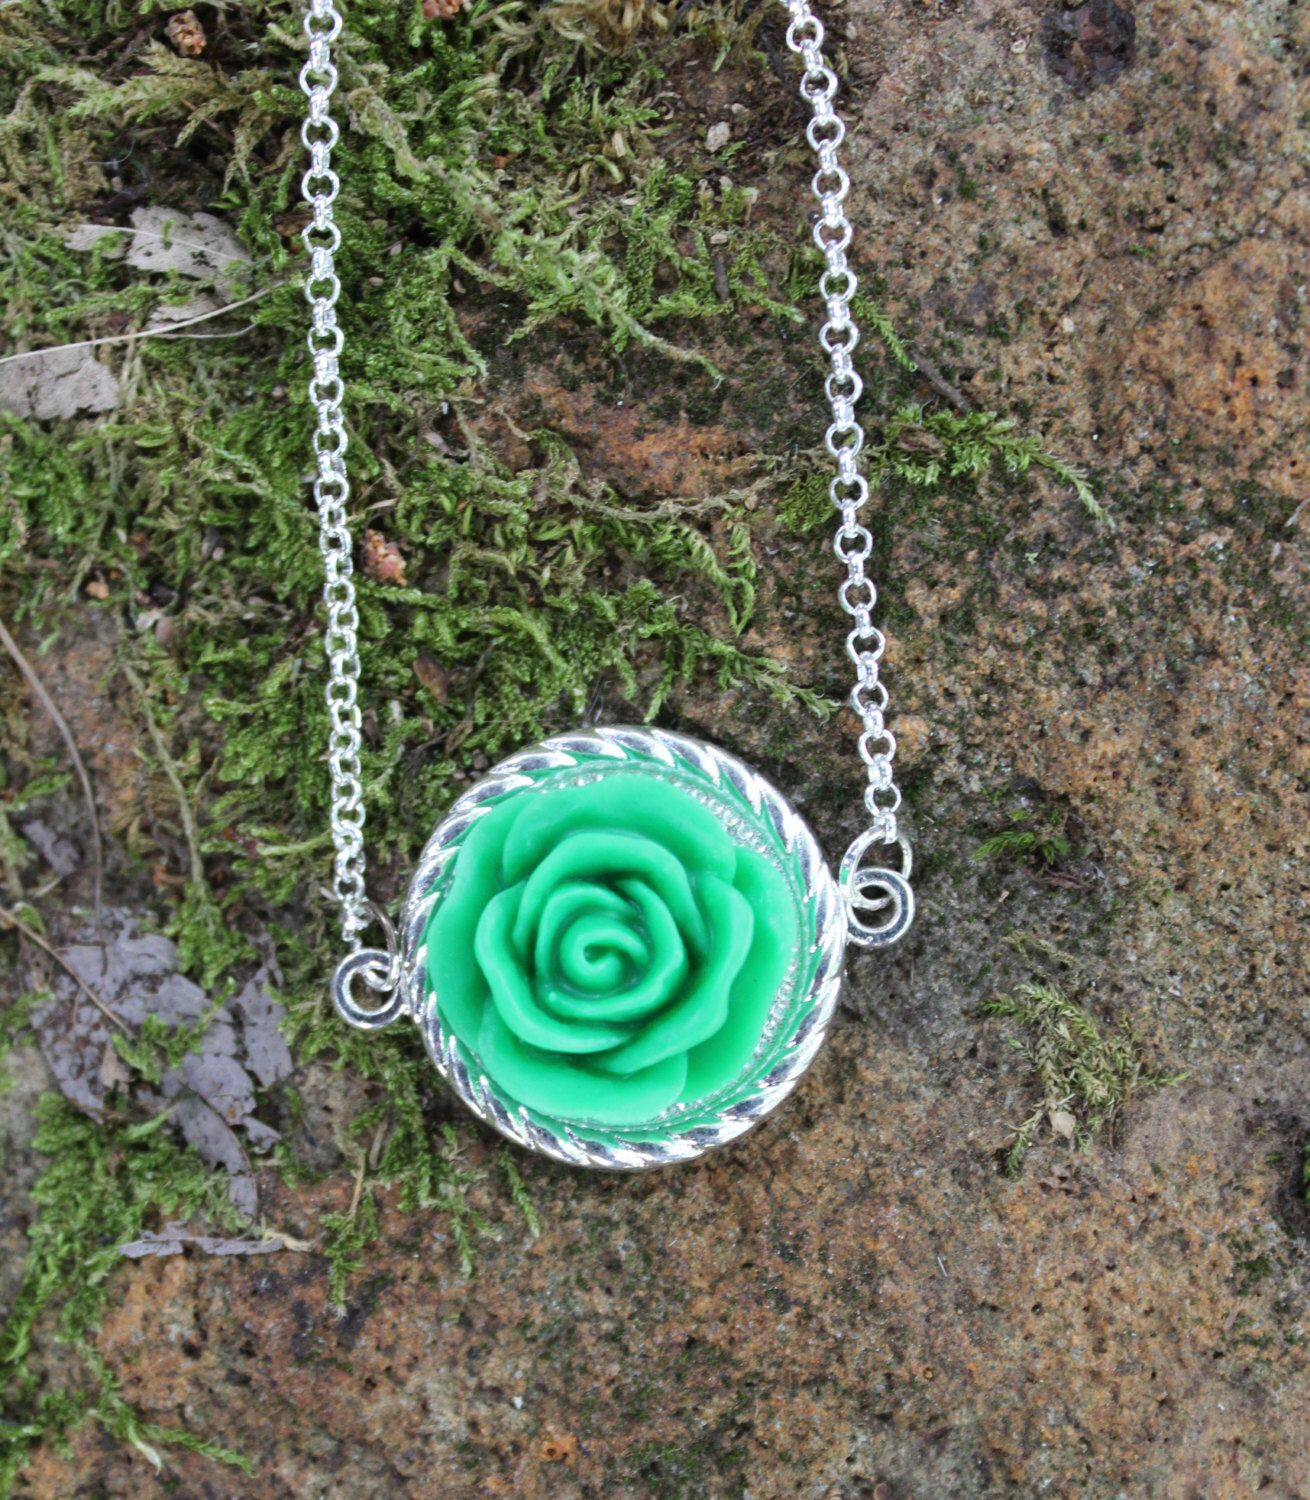 Kelly Green Shabby Chic Vintage Rose Cabochon Antique Gold, Antique Copper, Silver or Pewter Tone Necklace by ZephyrBreeze93 on Etsy https://www.etsy.com/listing/241624844/kelly-green-shabby-chic-vintage-rose